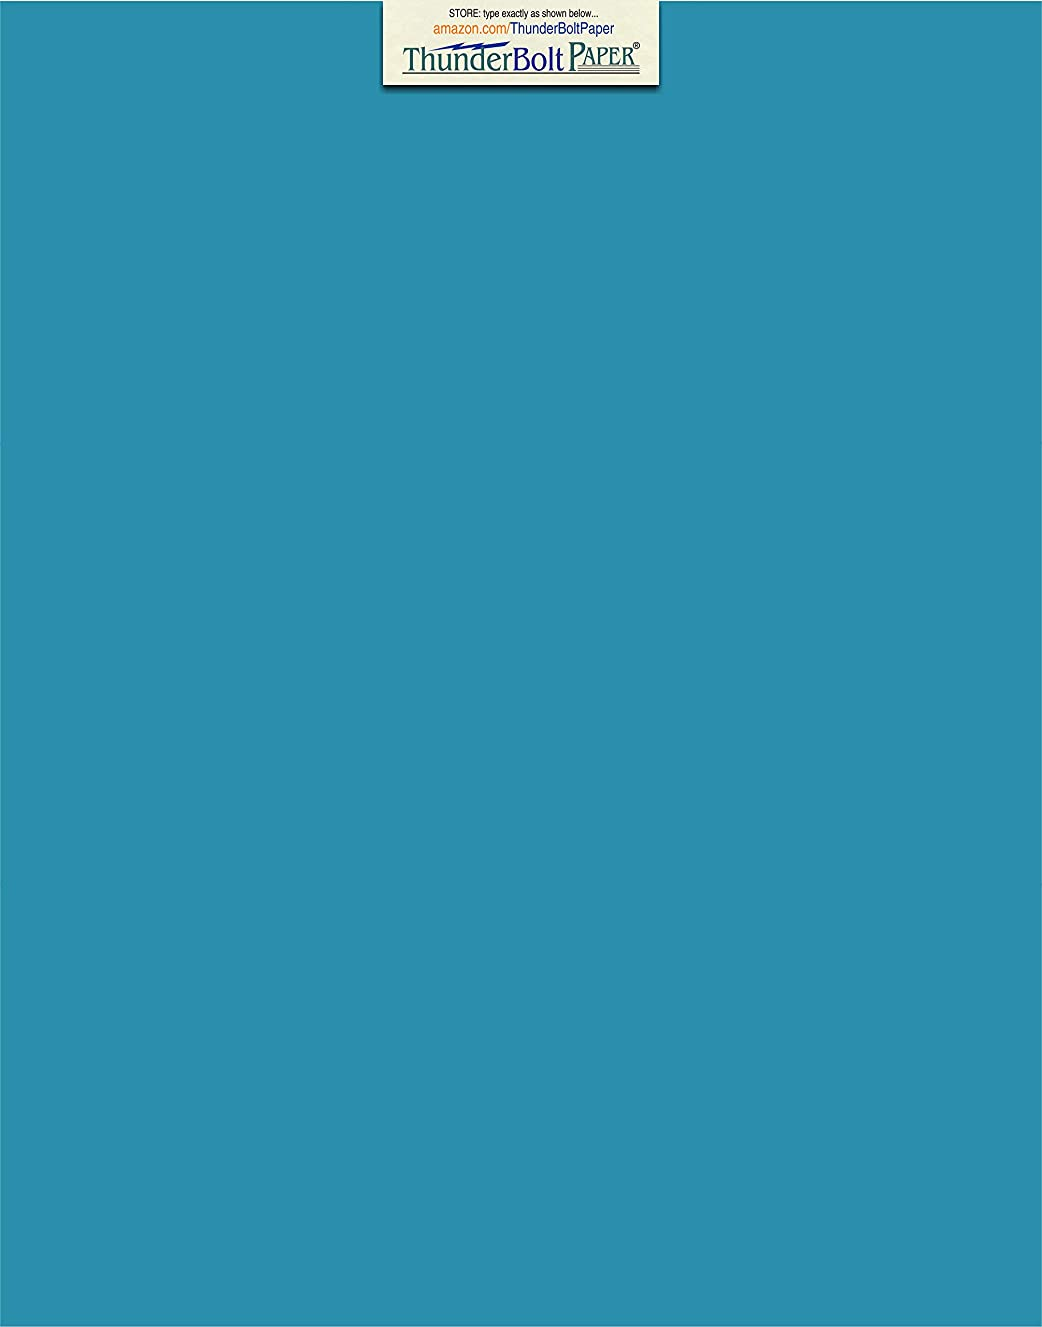 25 Bright Aqua Blue Cardstock 65lb Cover Paper 11 X 14 Inches Scrapbook|Picture-Frame Size - 65 lb/pound Light Weight Cardstock - Quality Smooth Paper Surface